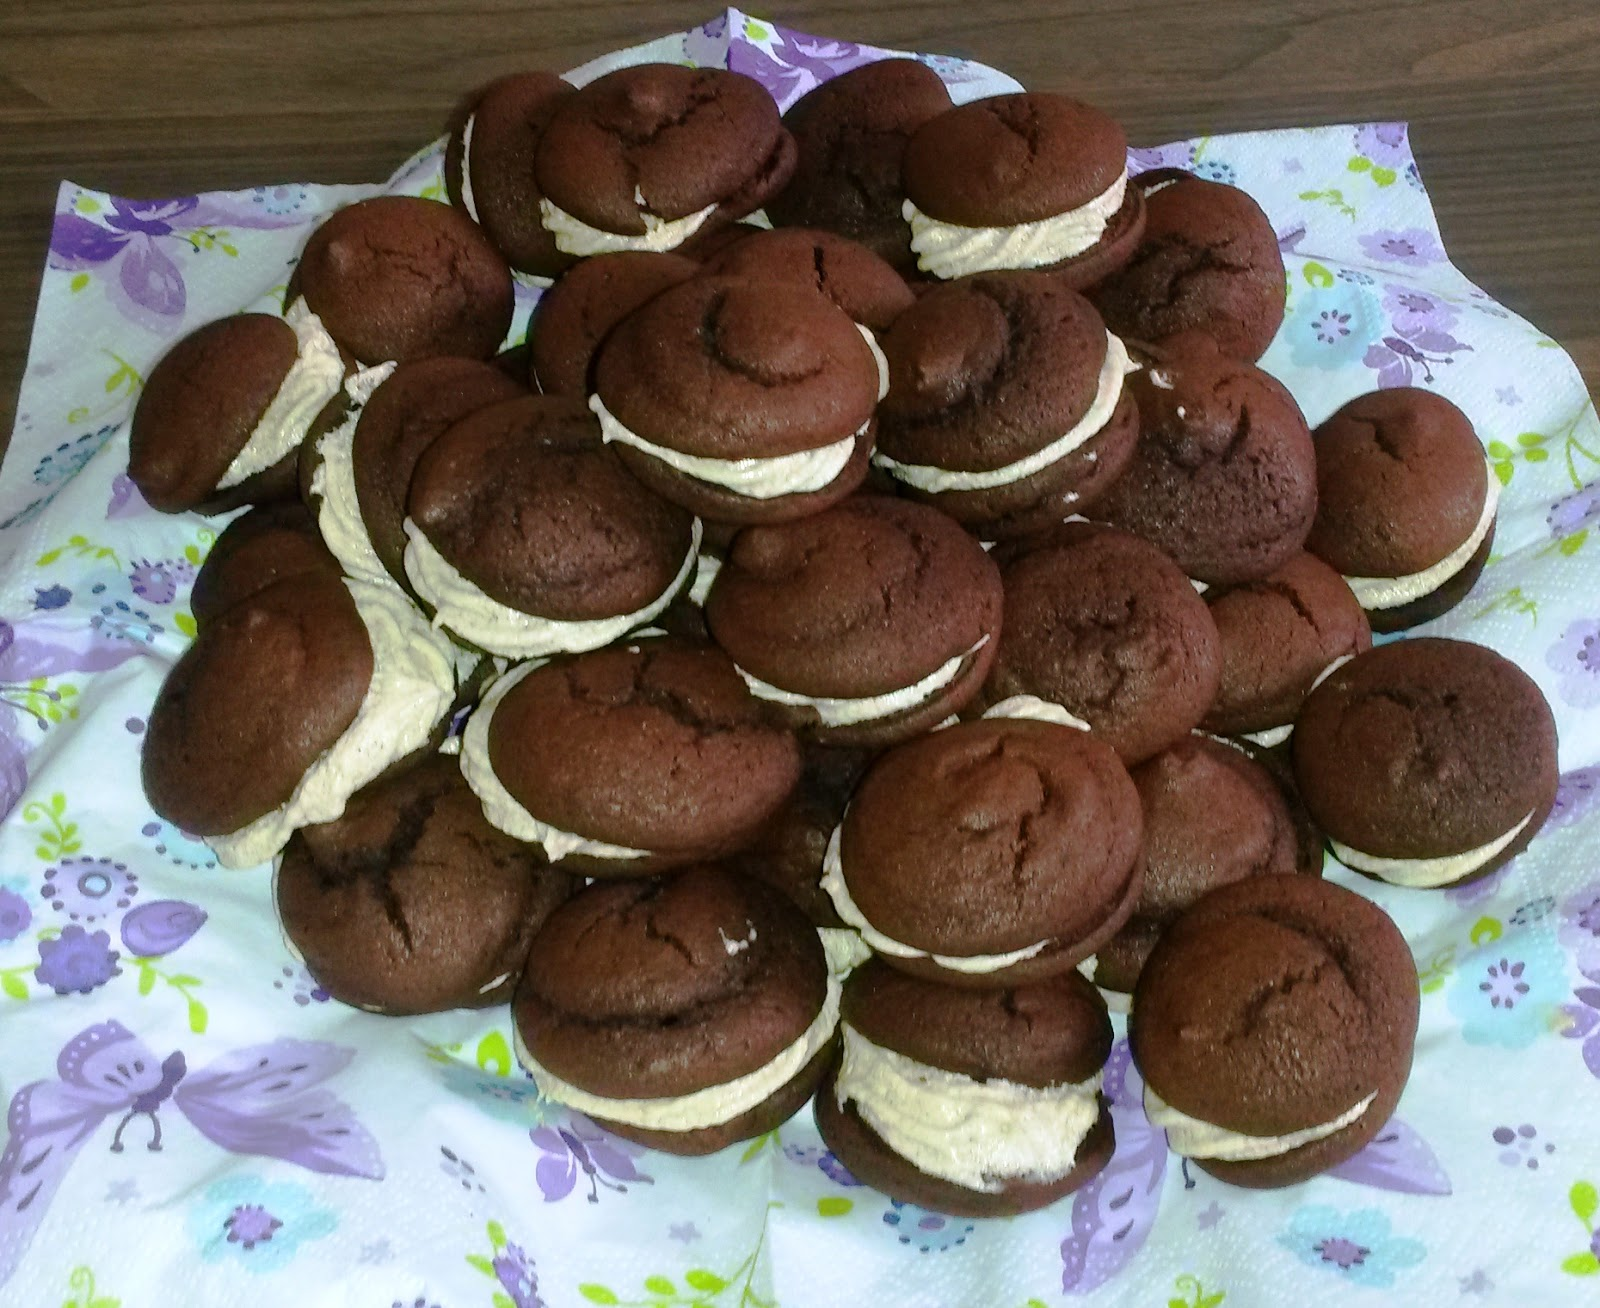 jasmin 39 s bake heaven whoopie pie woche tag 5 kaffee whoopies. Black Bedroom Furniture Sets. Home Design Ideas